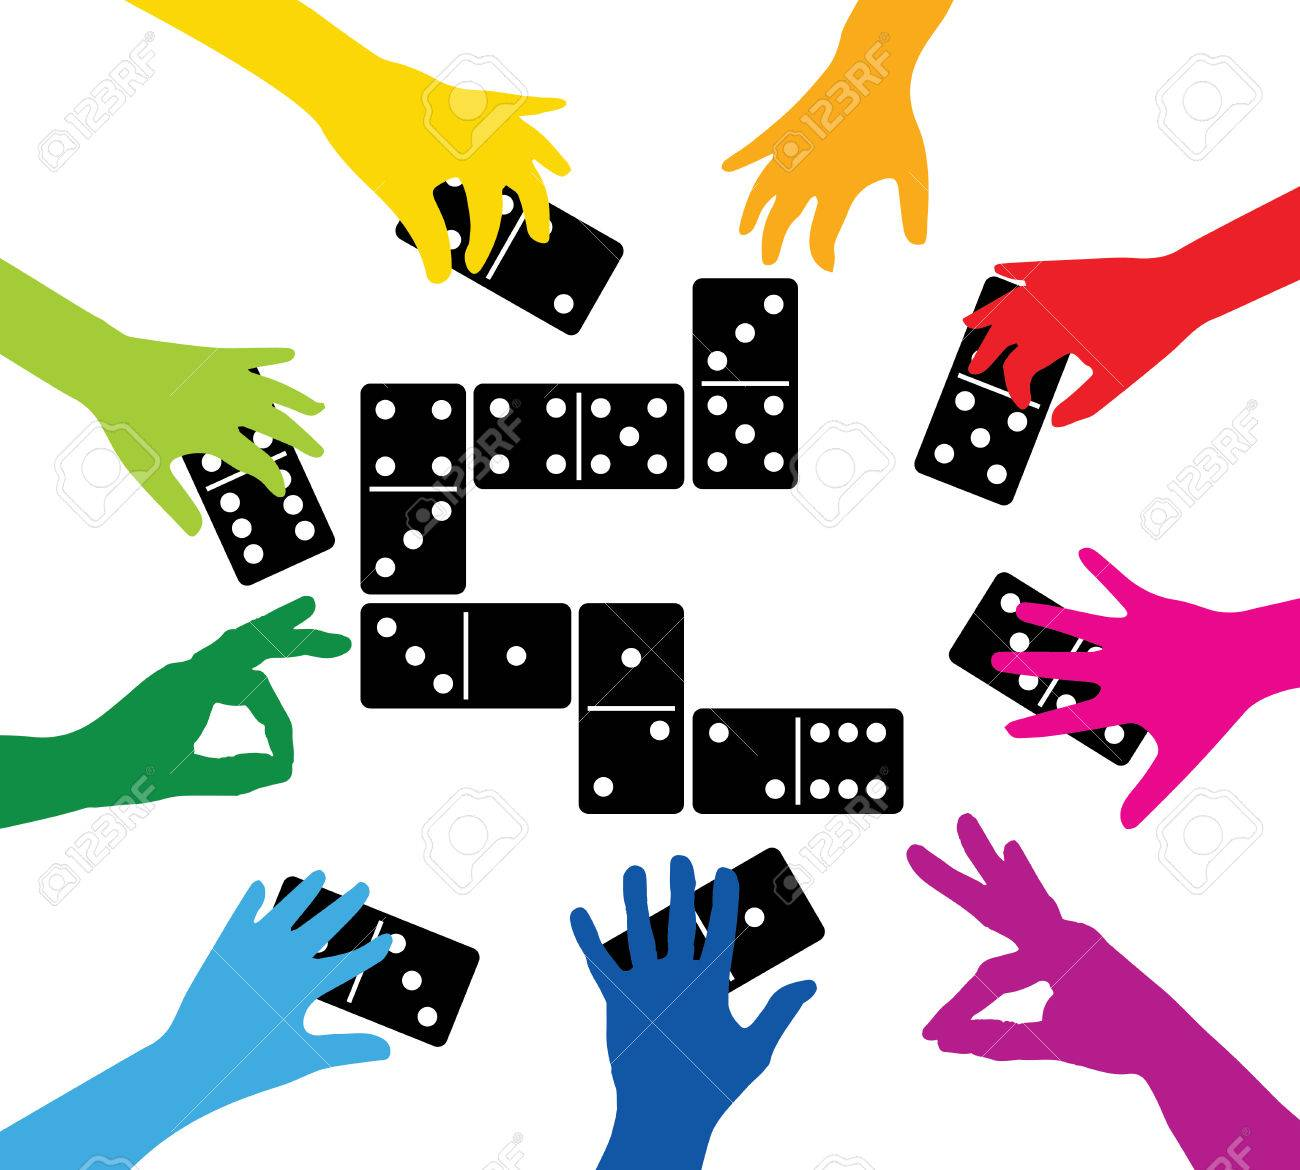 team playing with dominoes - 29854798